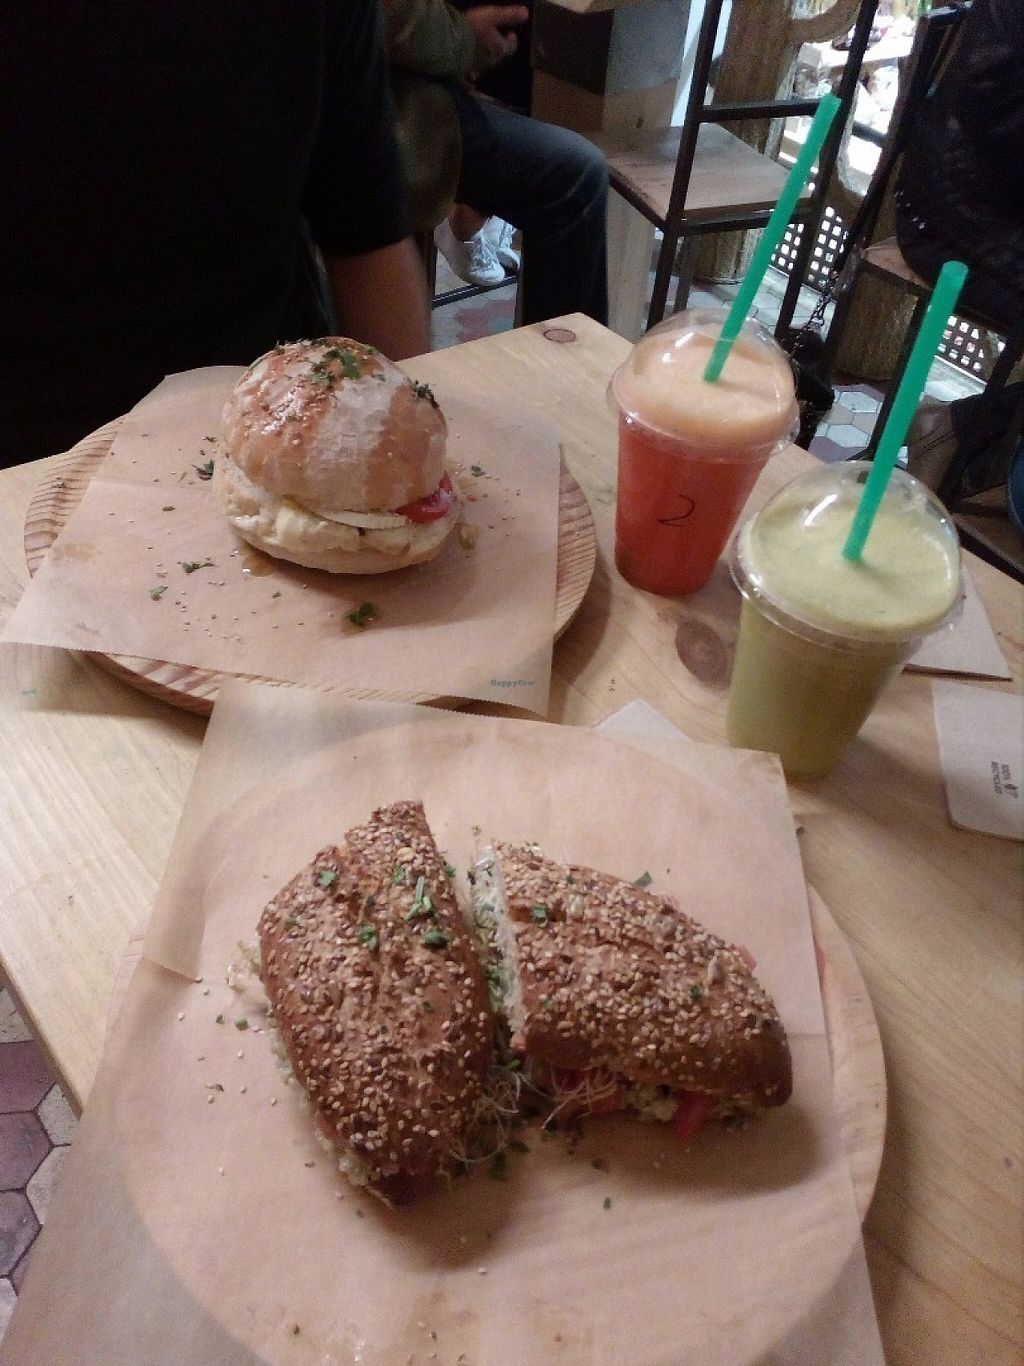 """Photo of La Huerta de Almeria - Calle Corredera  by <a href=""""/members/profile/wyrd"""">wyrd</a> <br/>Spanish sandwich (with white bread) and Vegan sandwich (with wholemeal flour bread) + two fruit smoothies <br/> May 2, 2017  - <a href='/contact/abuse/image/81172/254935'>Report</a>"""